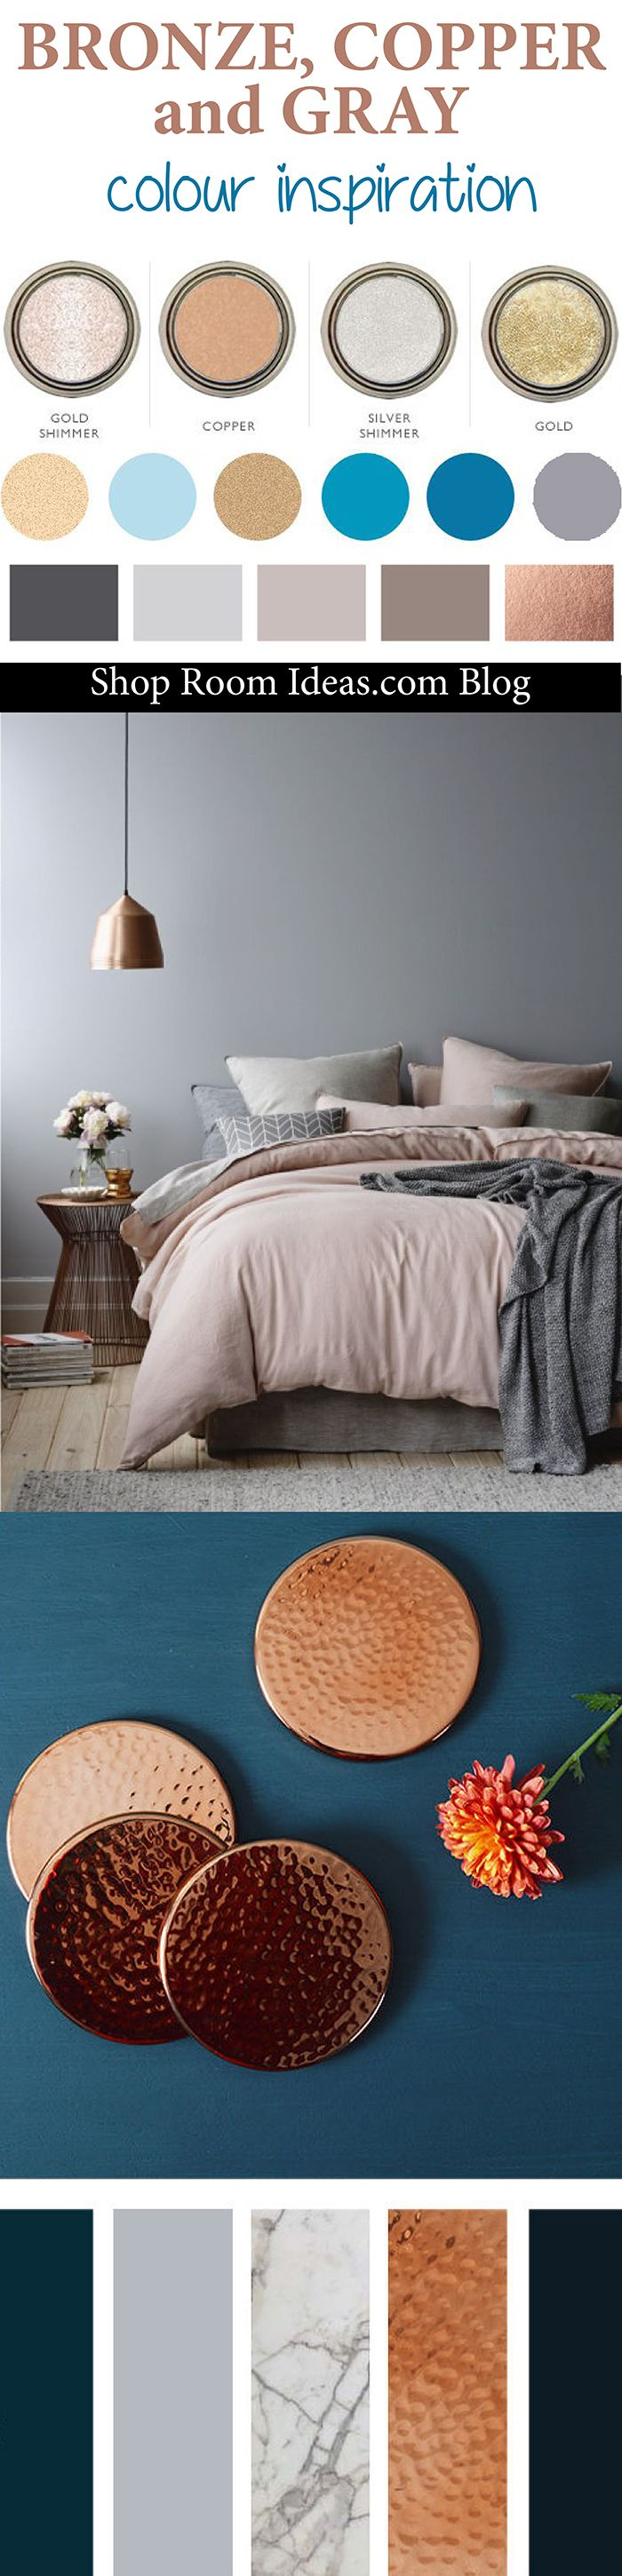 Best Bronze Copper Gray And Navy Blue Colour Palette Inspiration For Bedrooms Living Rooms 400 x 300